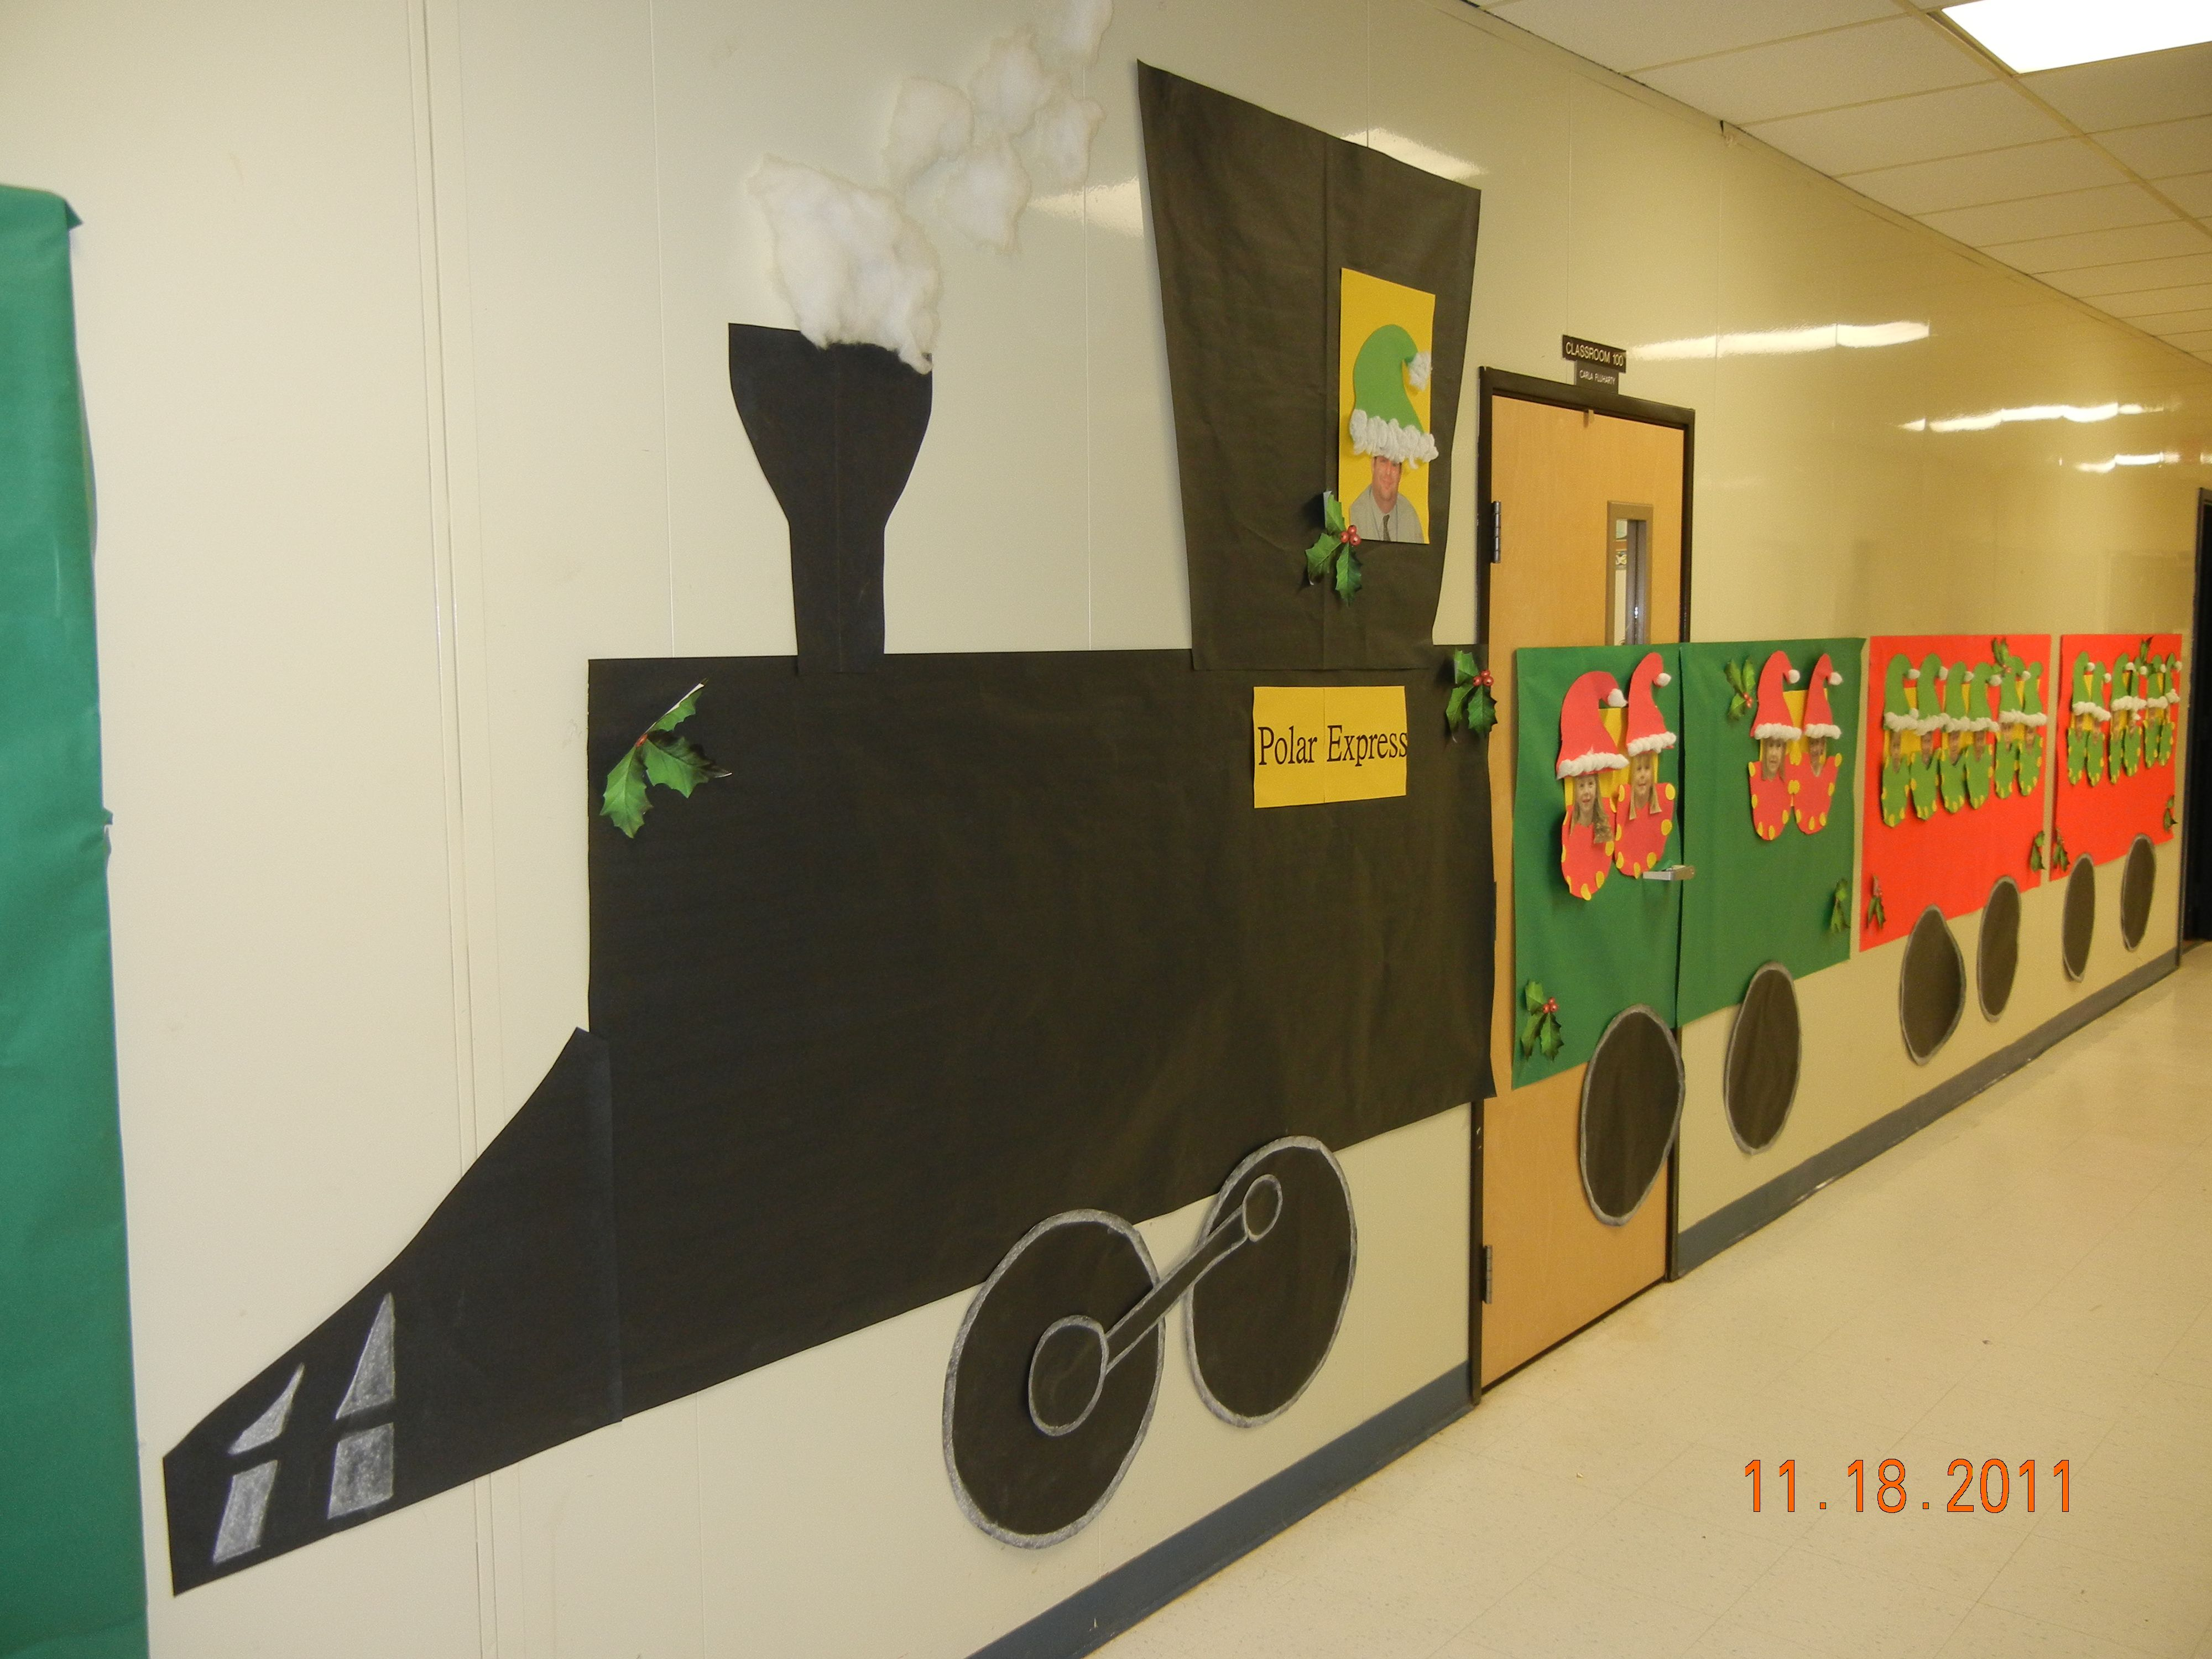 Our Polar Express Train With Photos Of Children In The